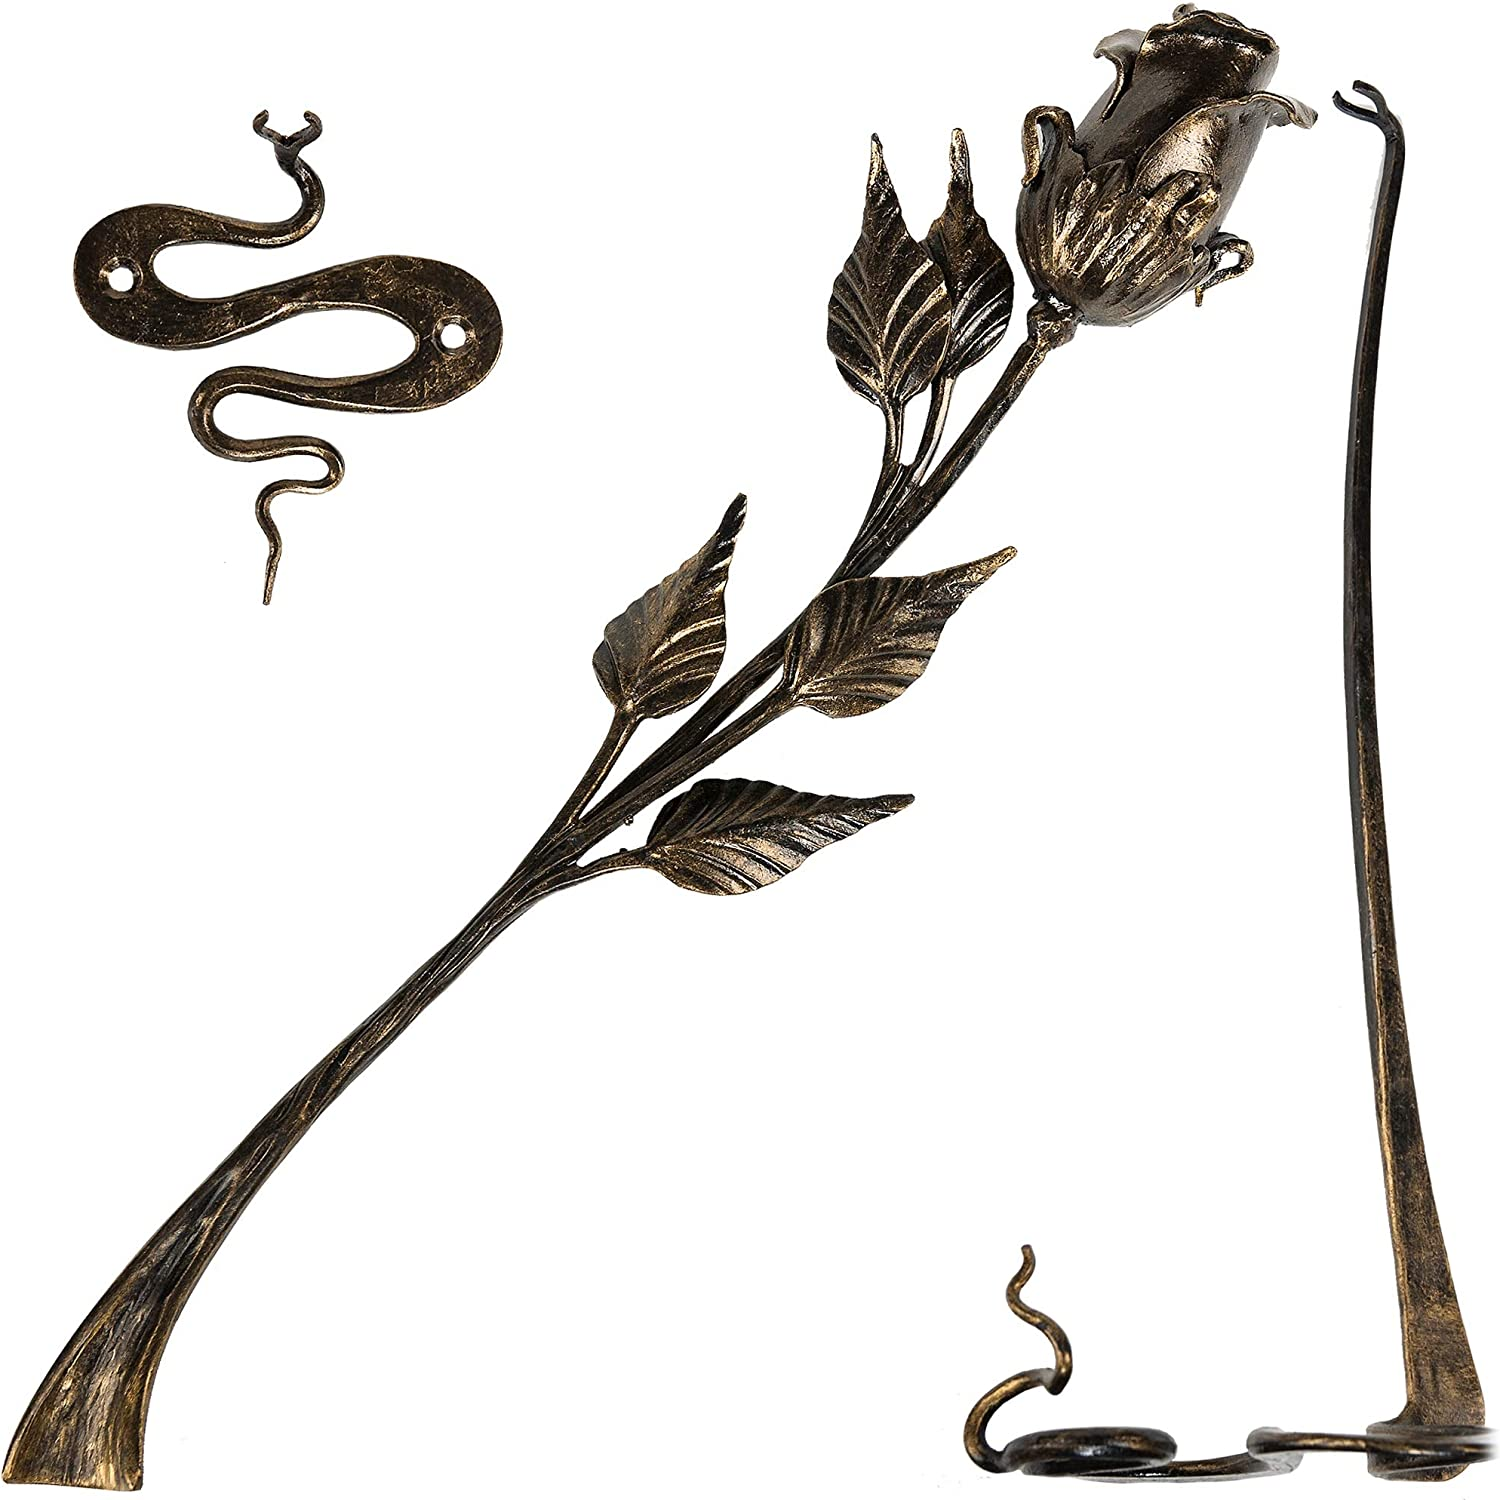 Hand Forged Metal pink Flower 16in Iron Sculpture w  Stand and Wall Holder Wrought Steel Decorative Flower Centerpiece Decoration Unique Anniversary, Wedding, Mom's day Gift, Black w gold Patina, Mat